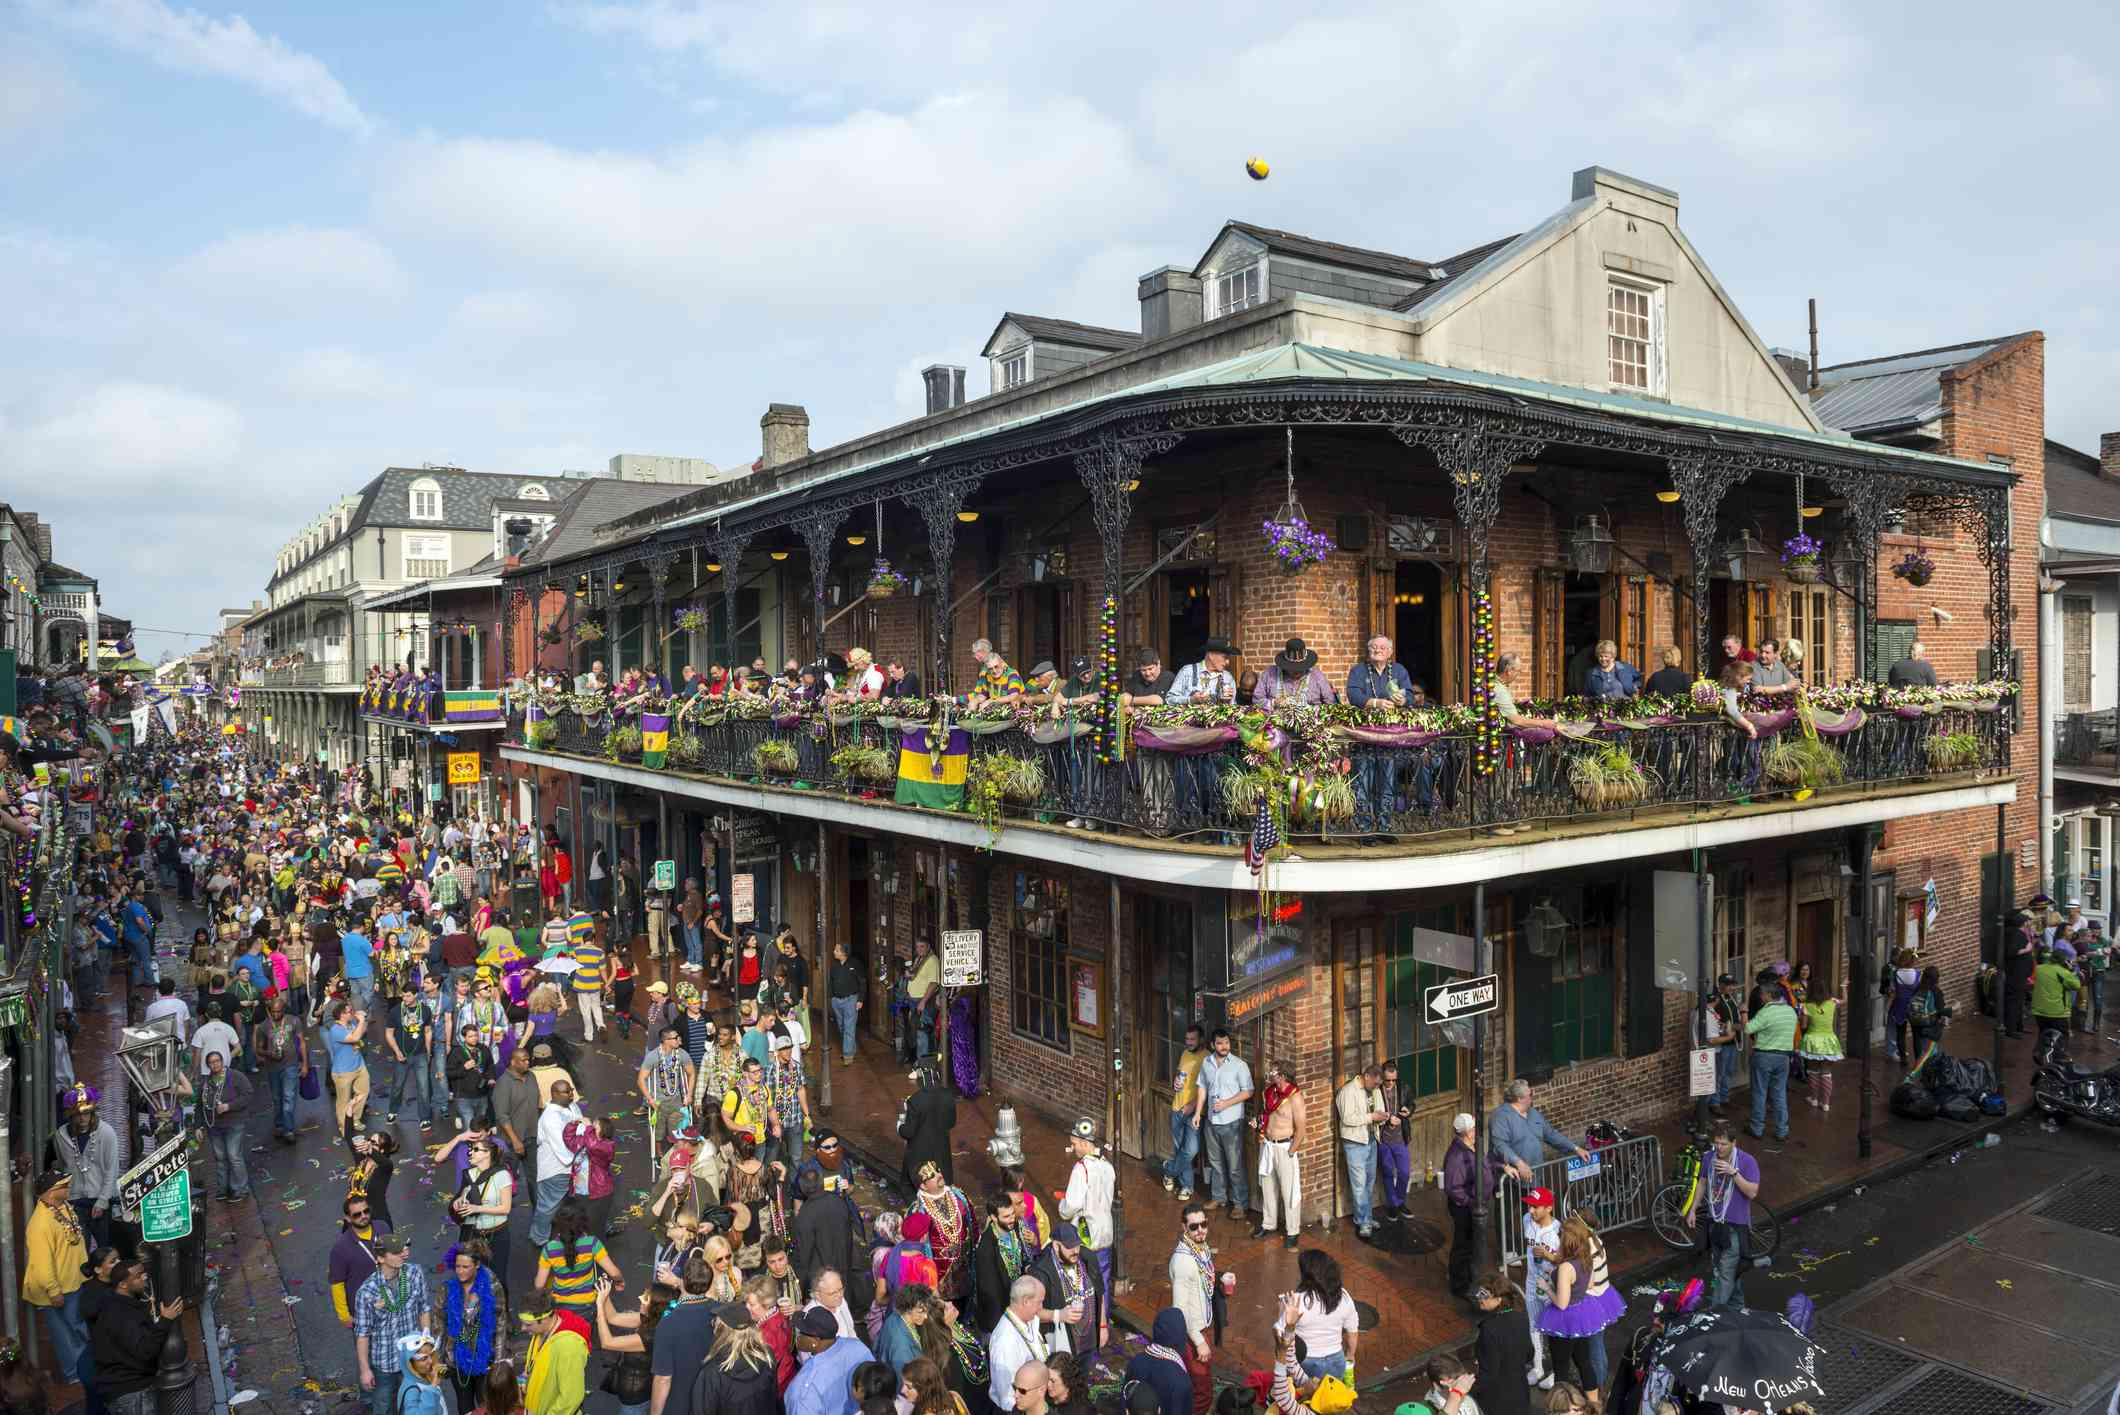 Crowds in the French Quarter during Mardi Gras